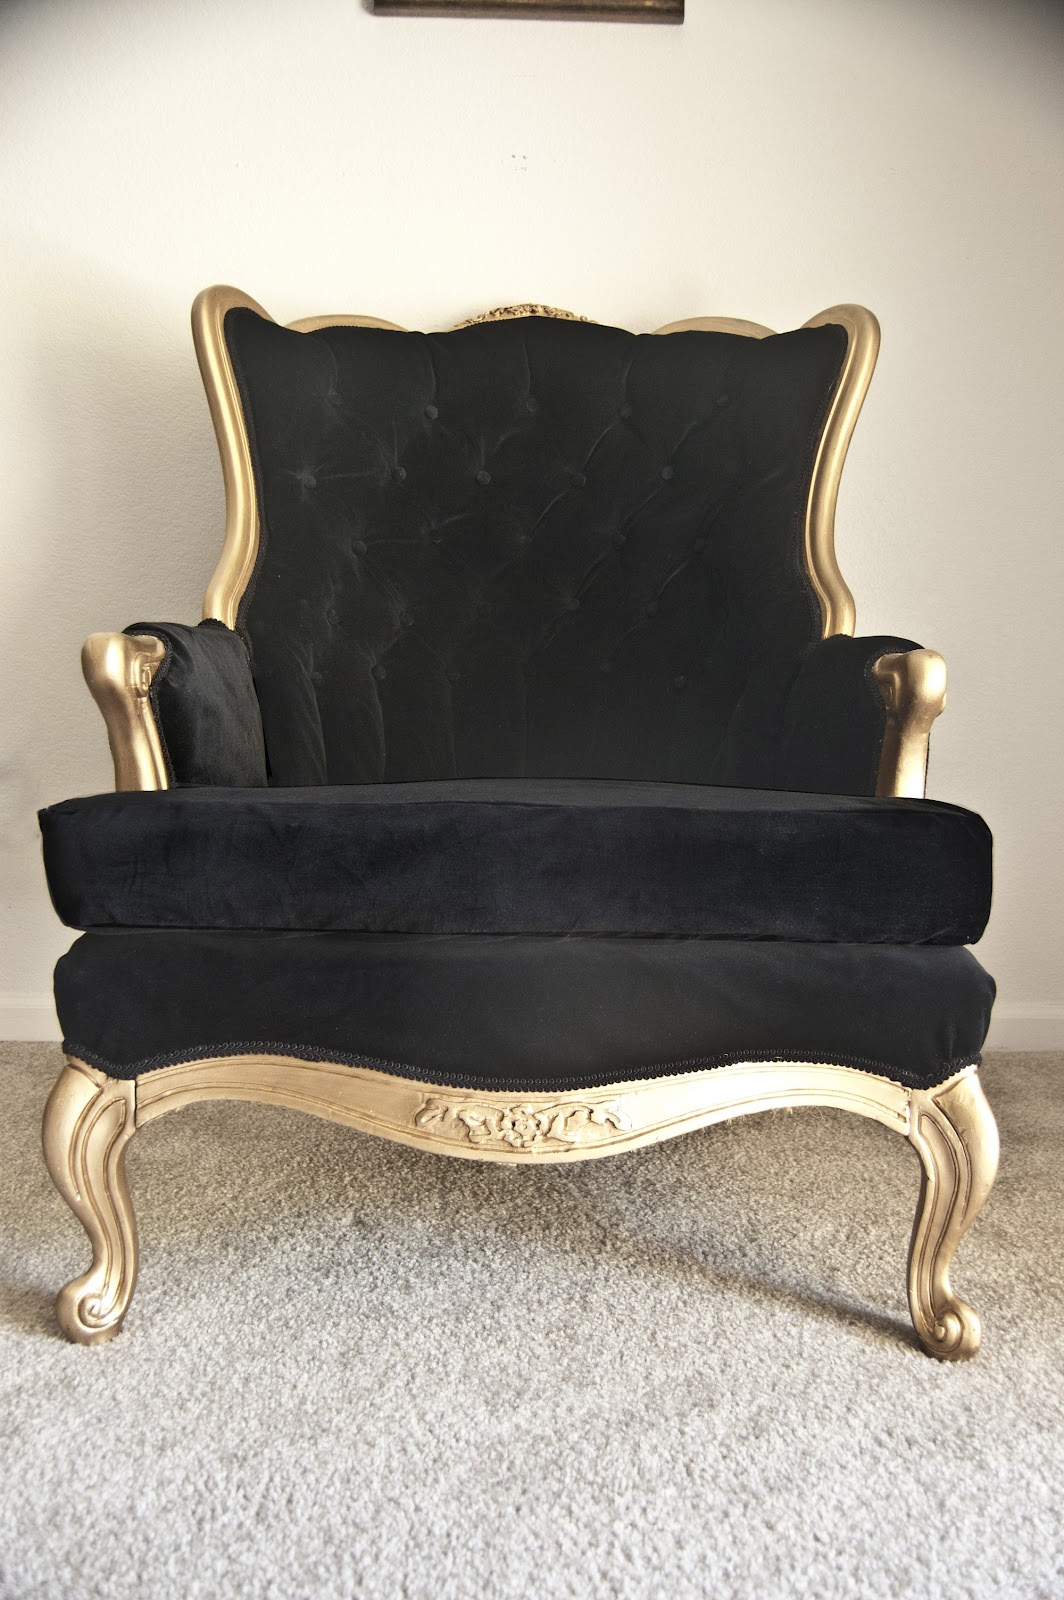 551 east : Chair Week Day 3: Tufted Black Velvet